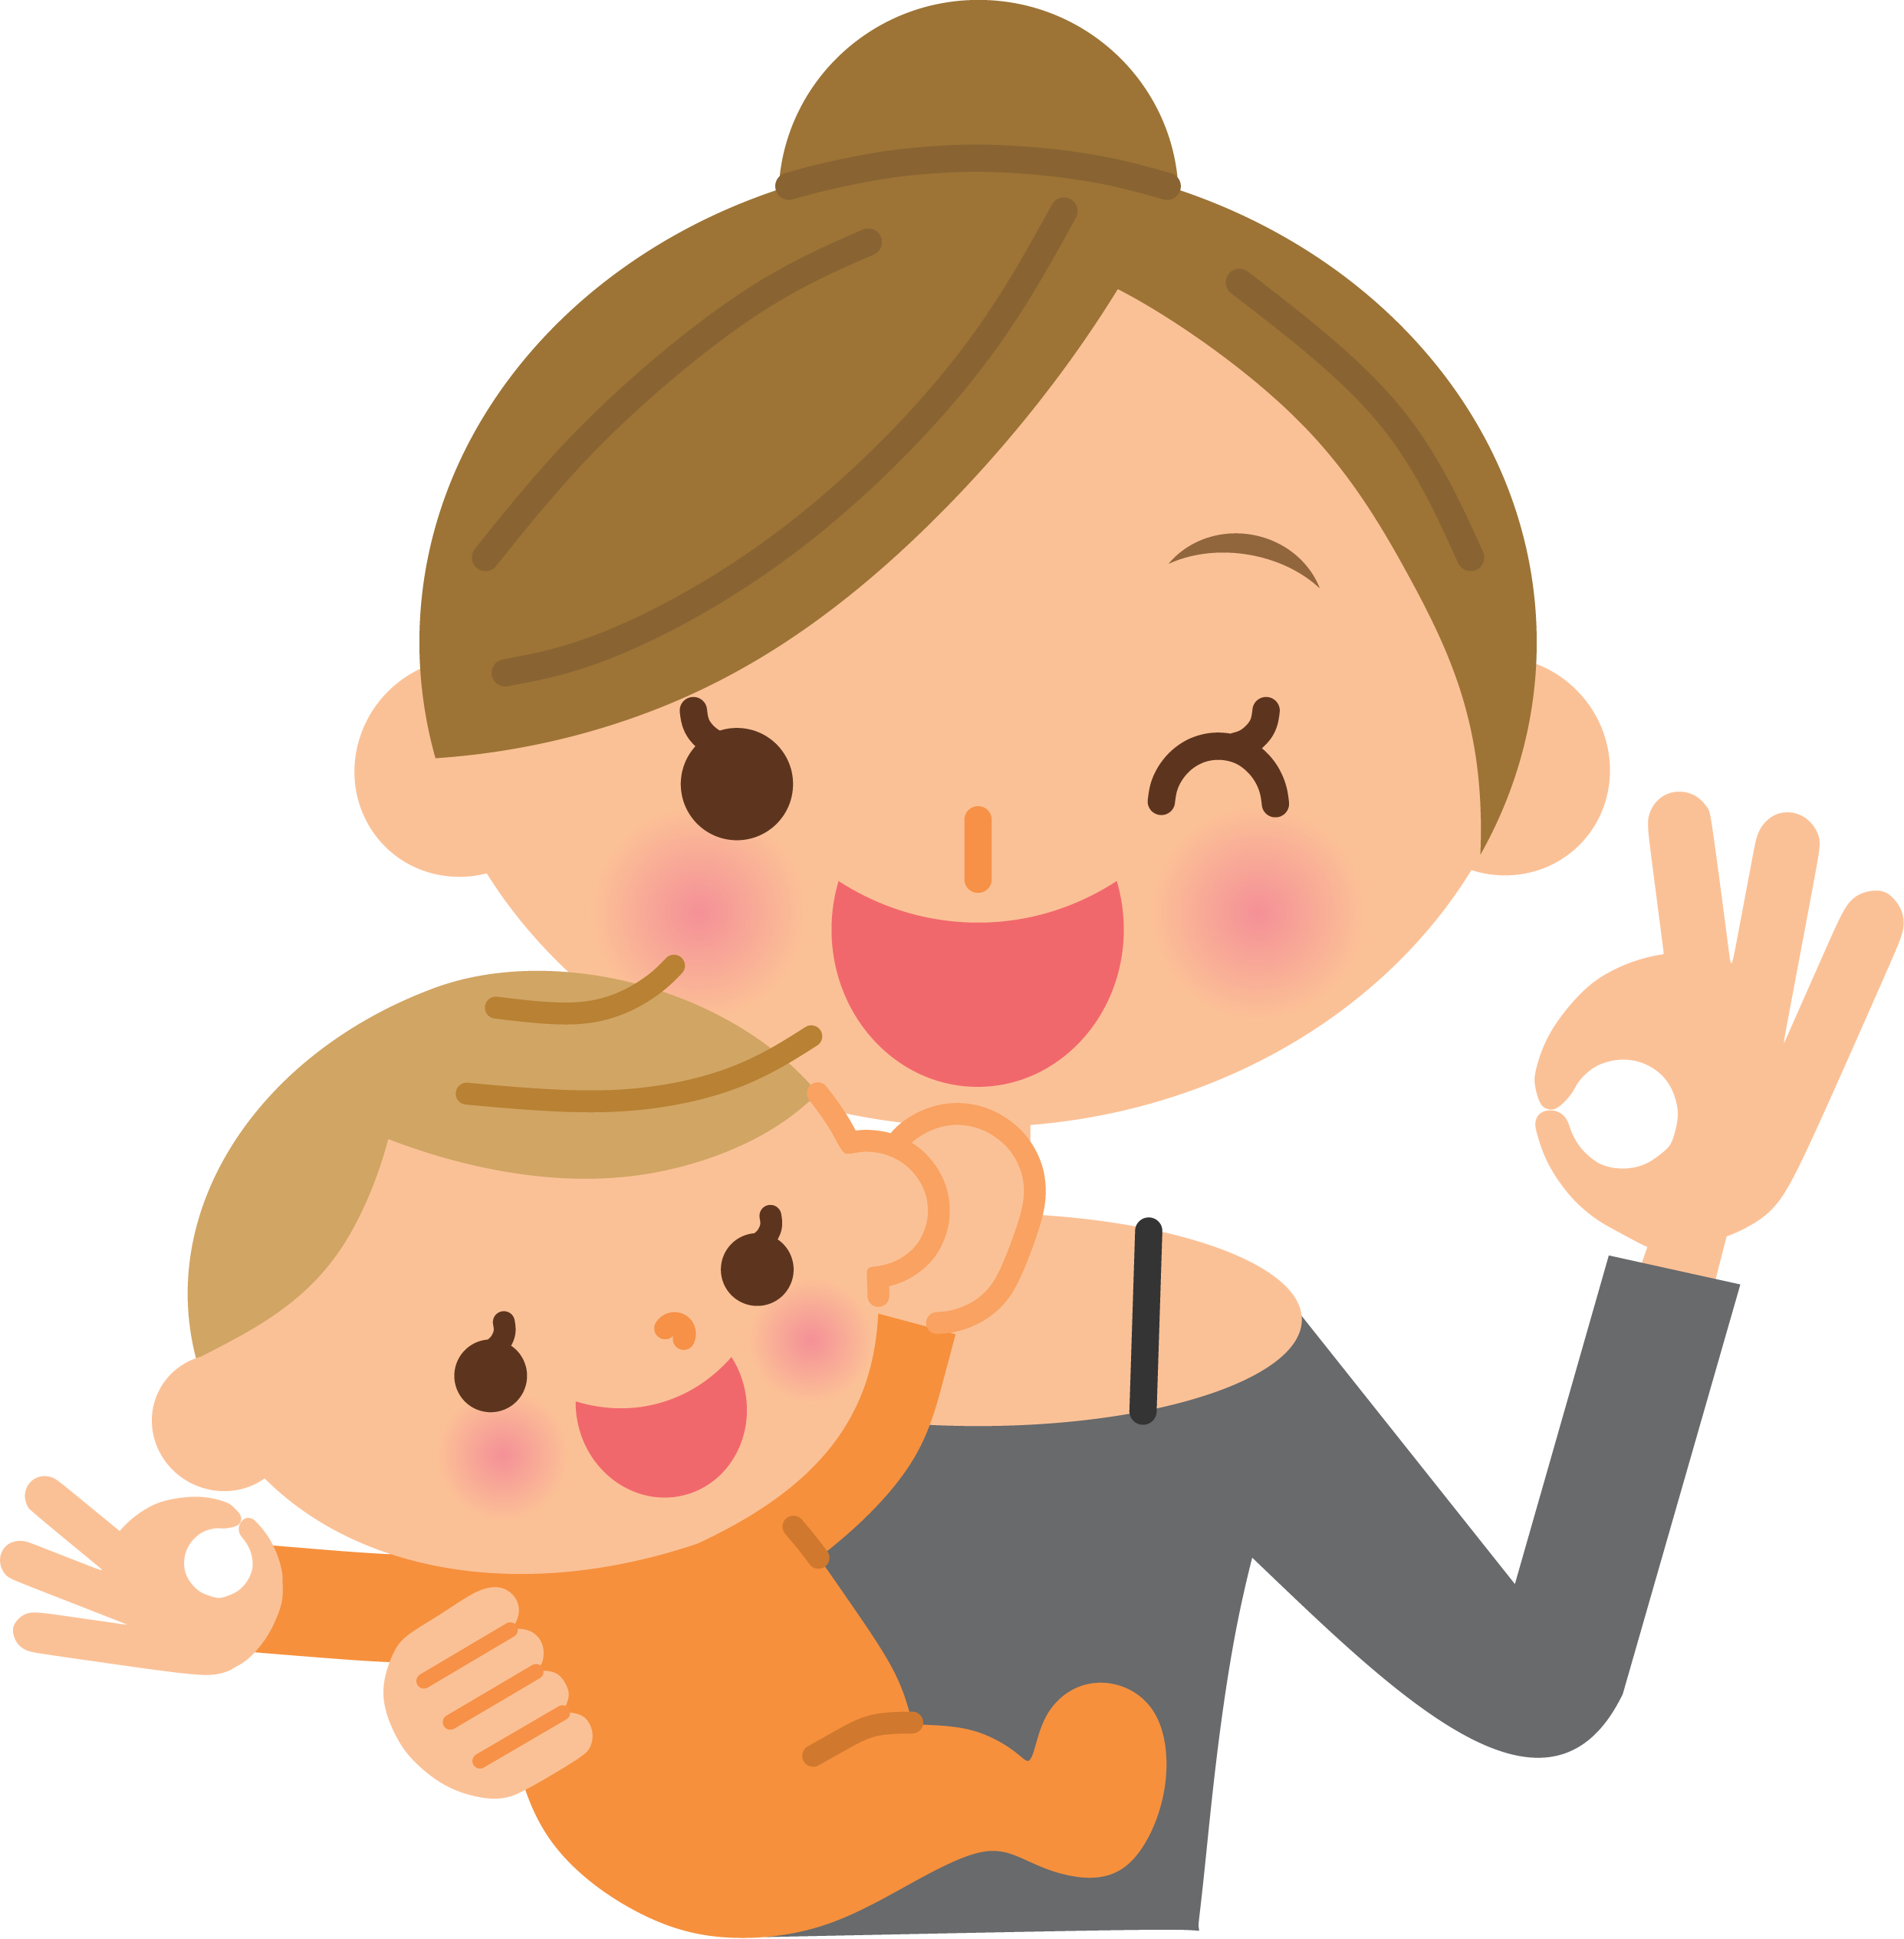 S day png images. Mother clipart png free download